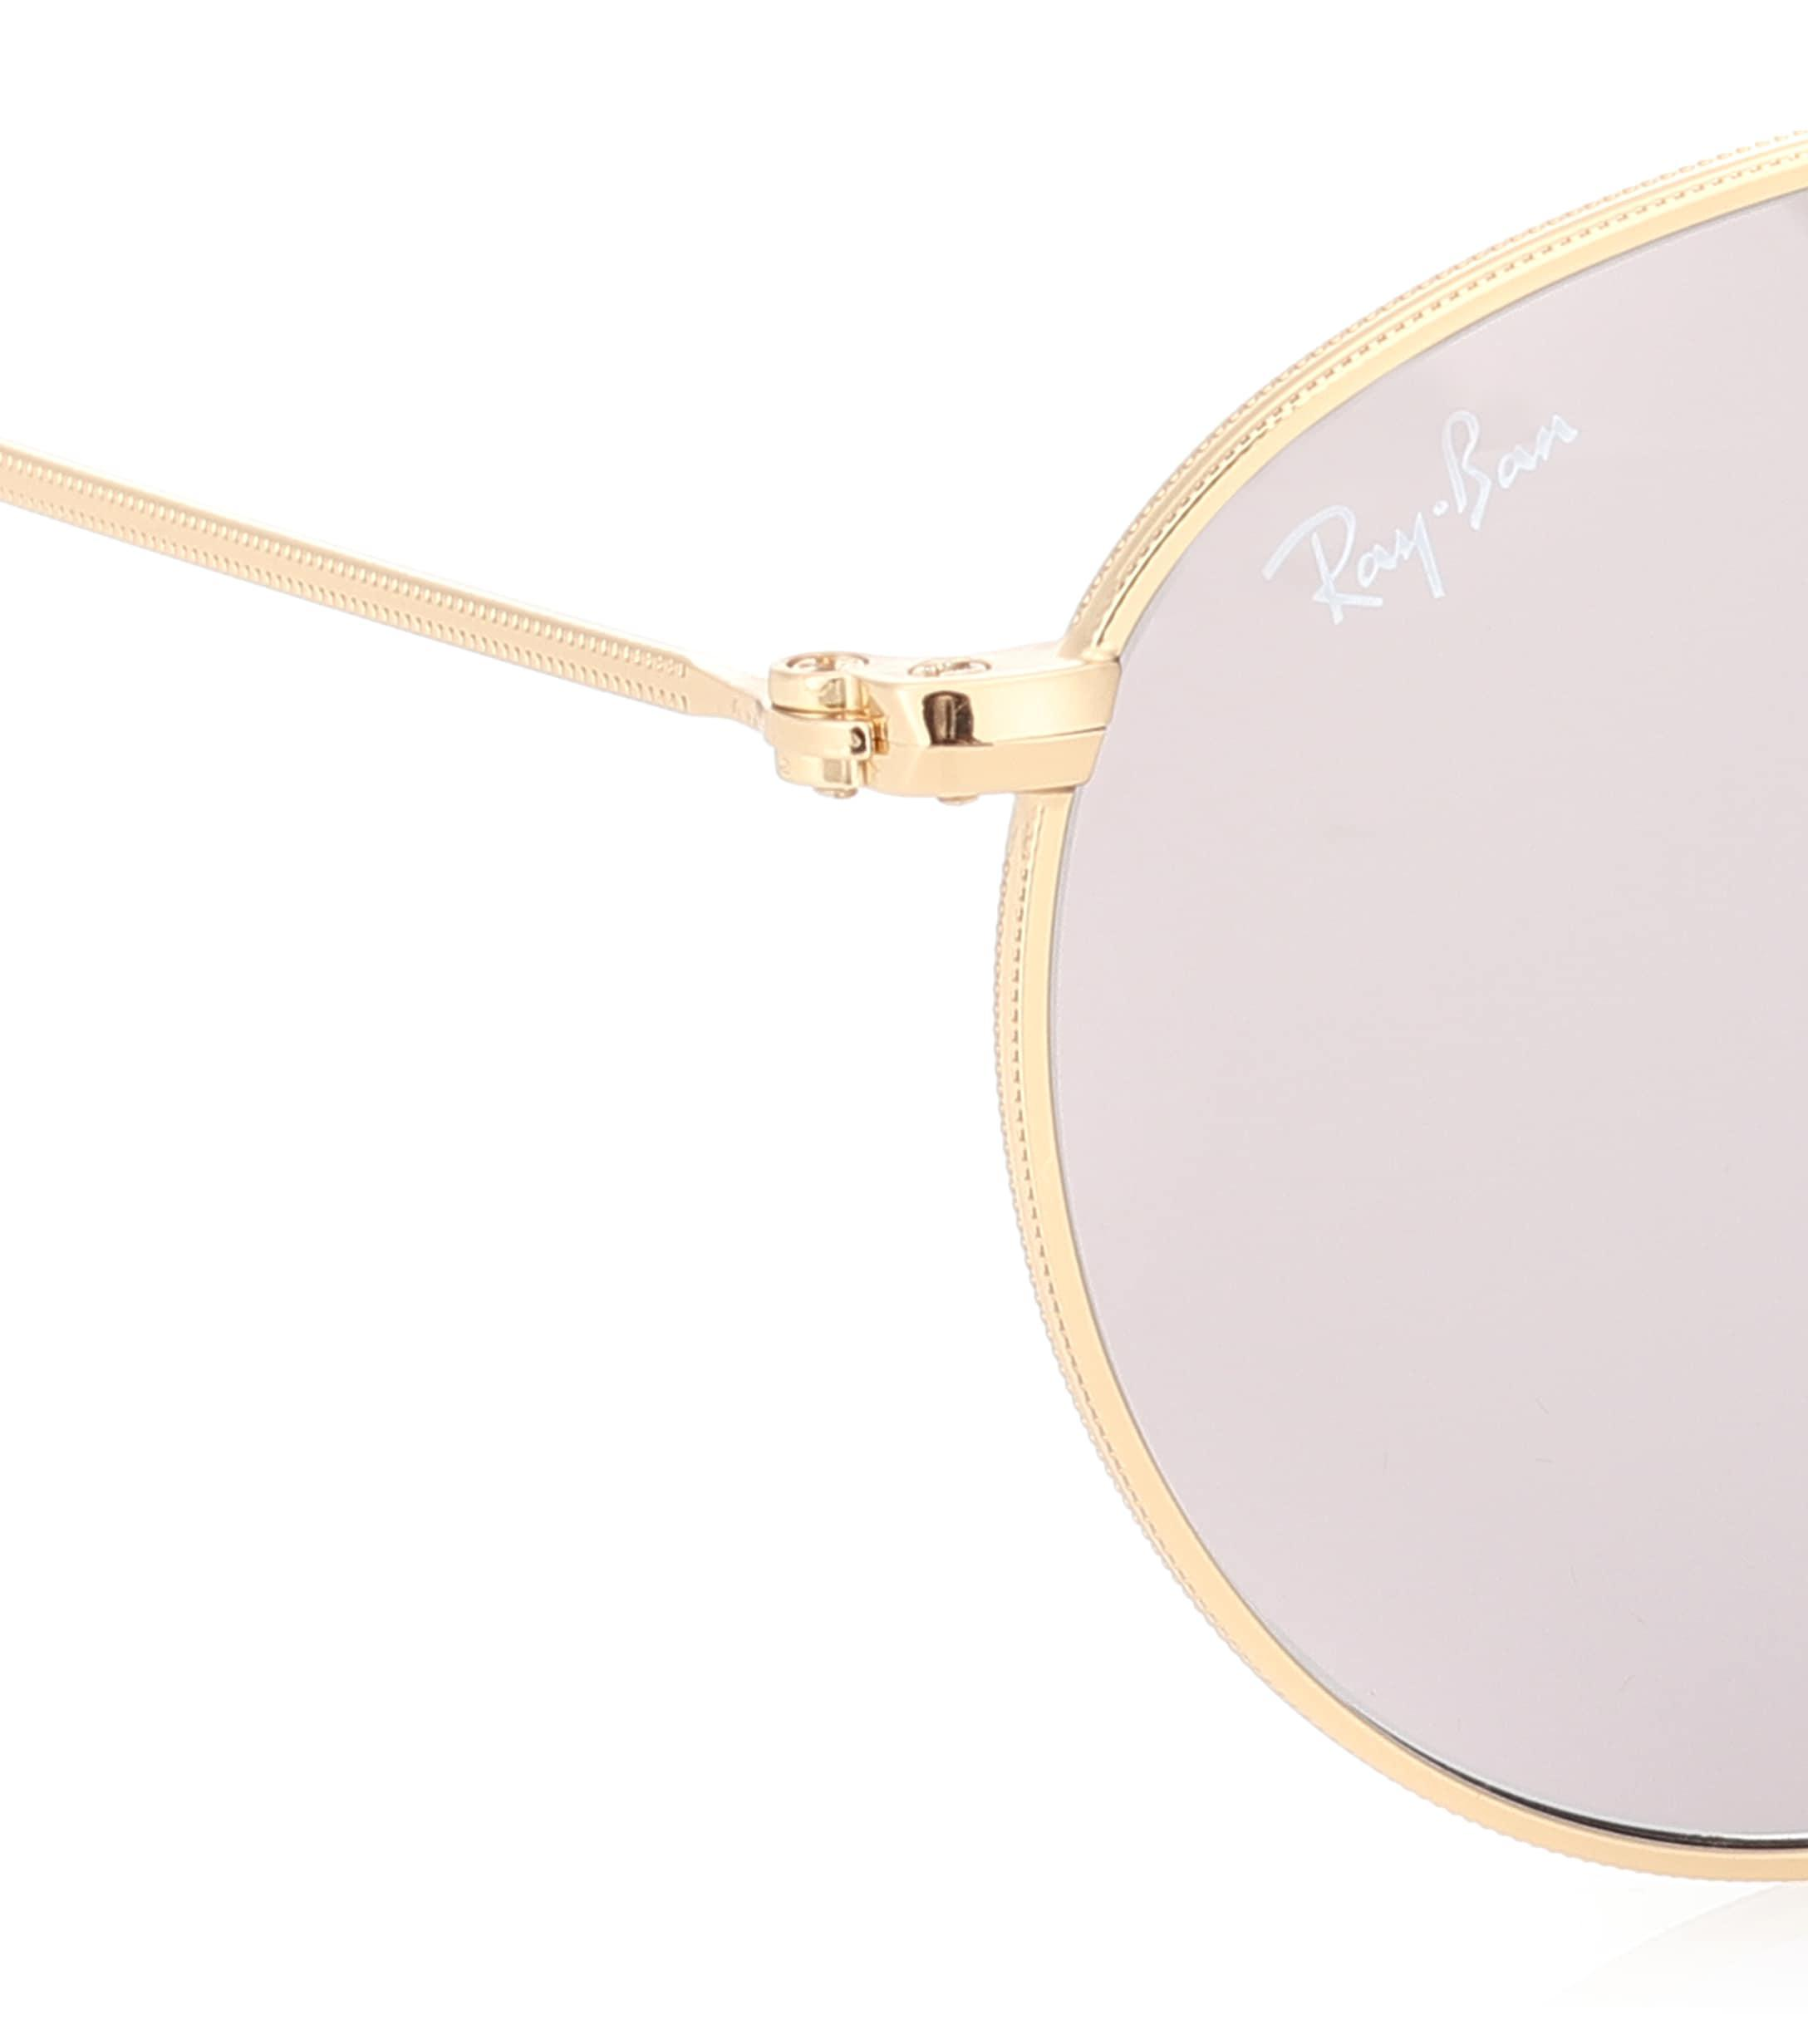 Ray-Ban Synthetic Rb3447 Round Sunglasses in Gold (Metallic)